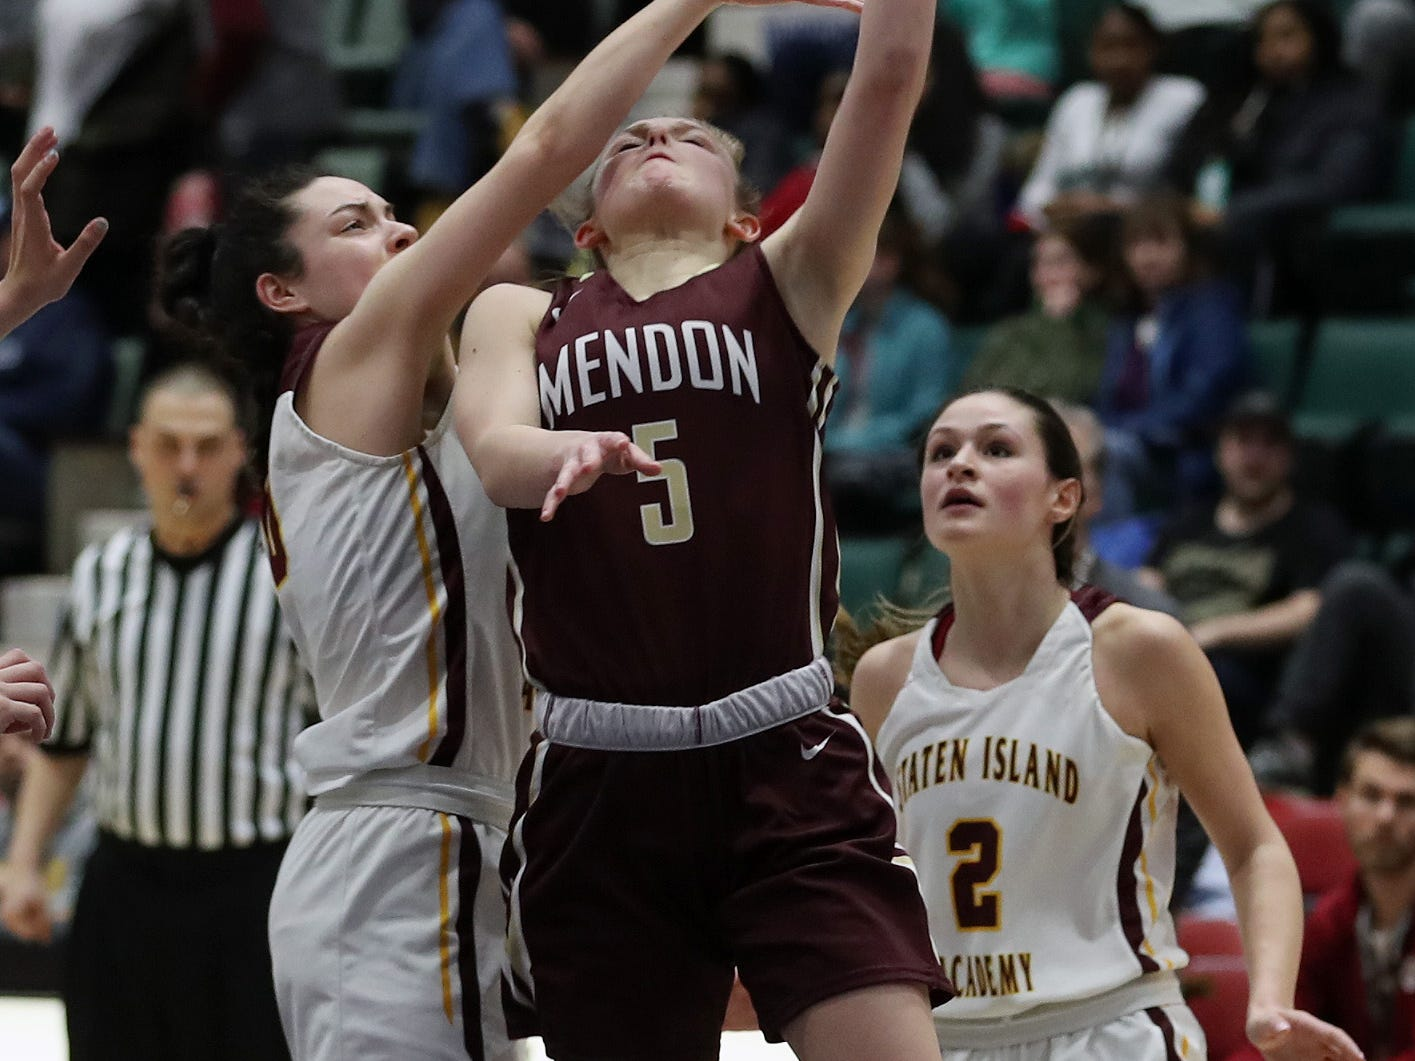 Pittsford Mendon's Courtney Naugle (5) goes up for a shot against Staten Island in the championship game of the Federation Tournament at the Cool Insuring Arena in Glens Falls March 23, 2019.